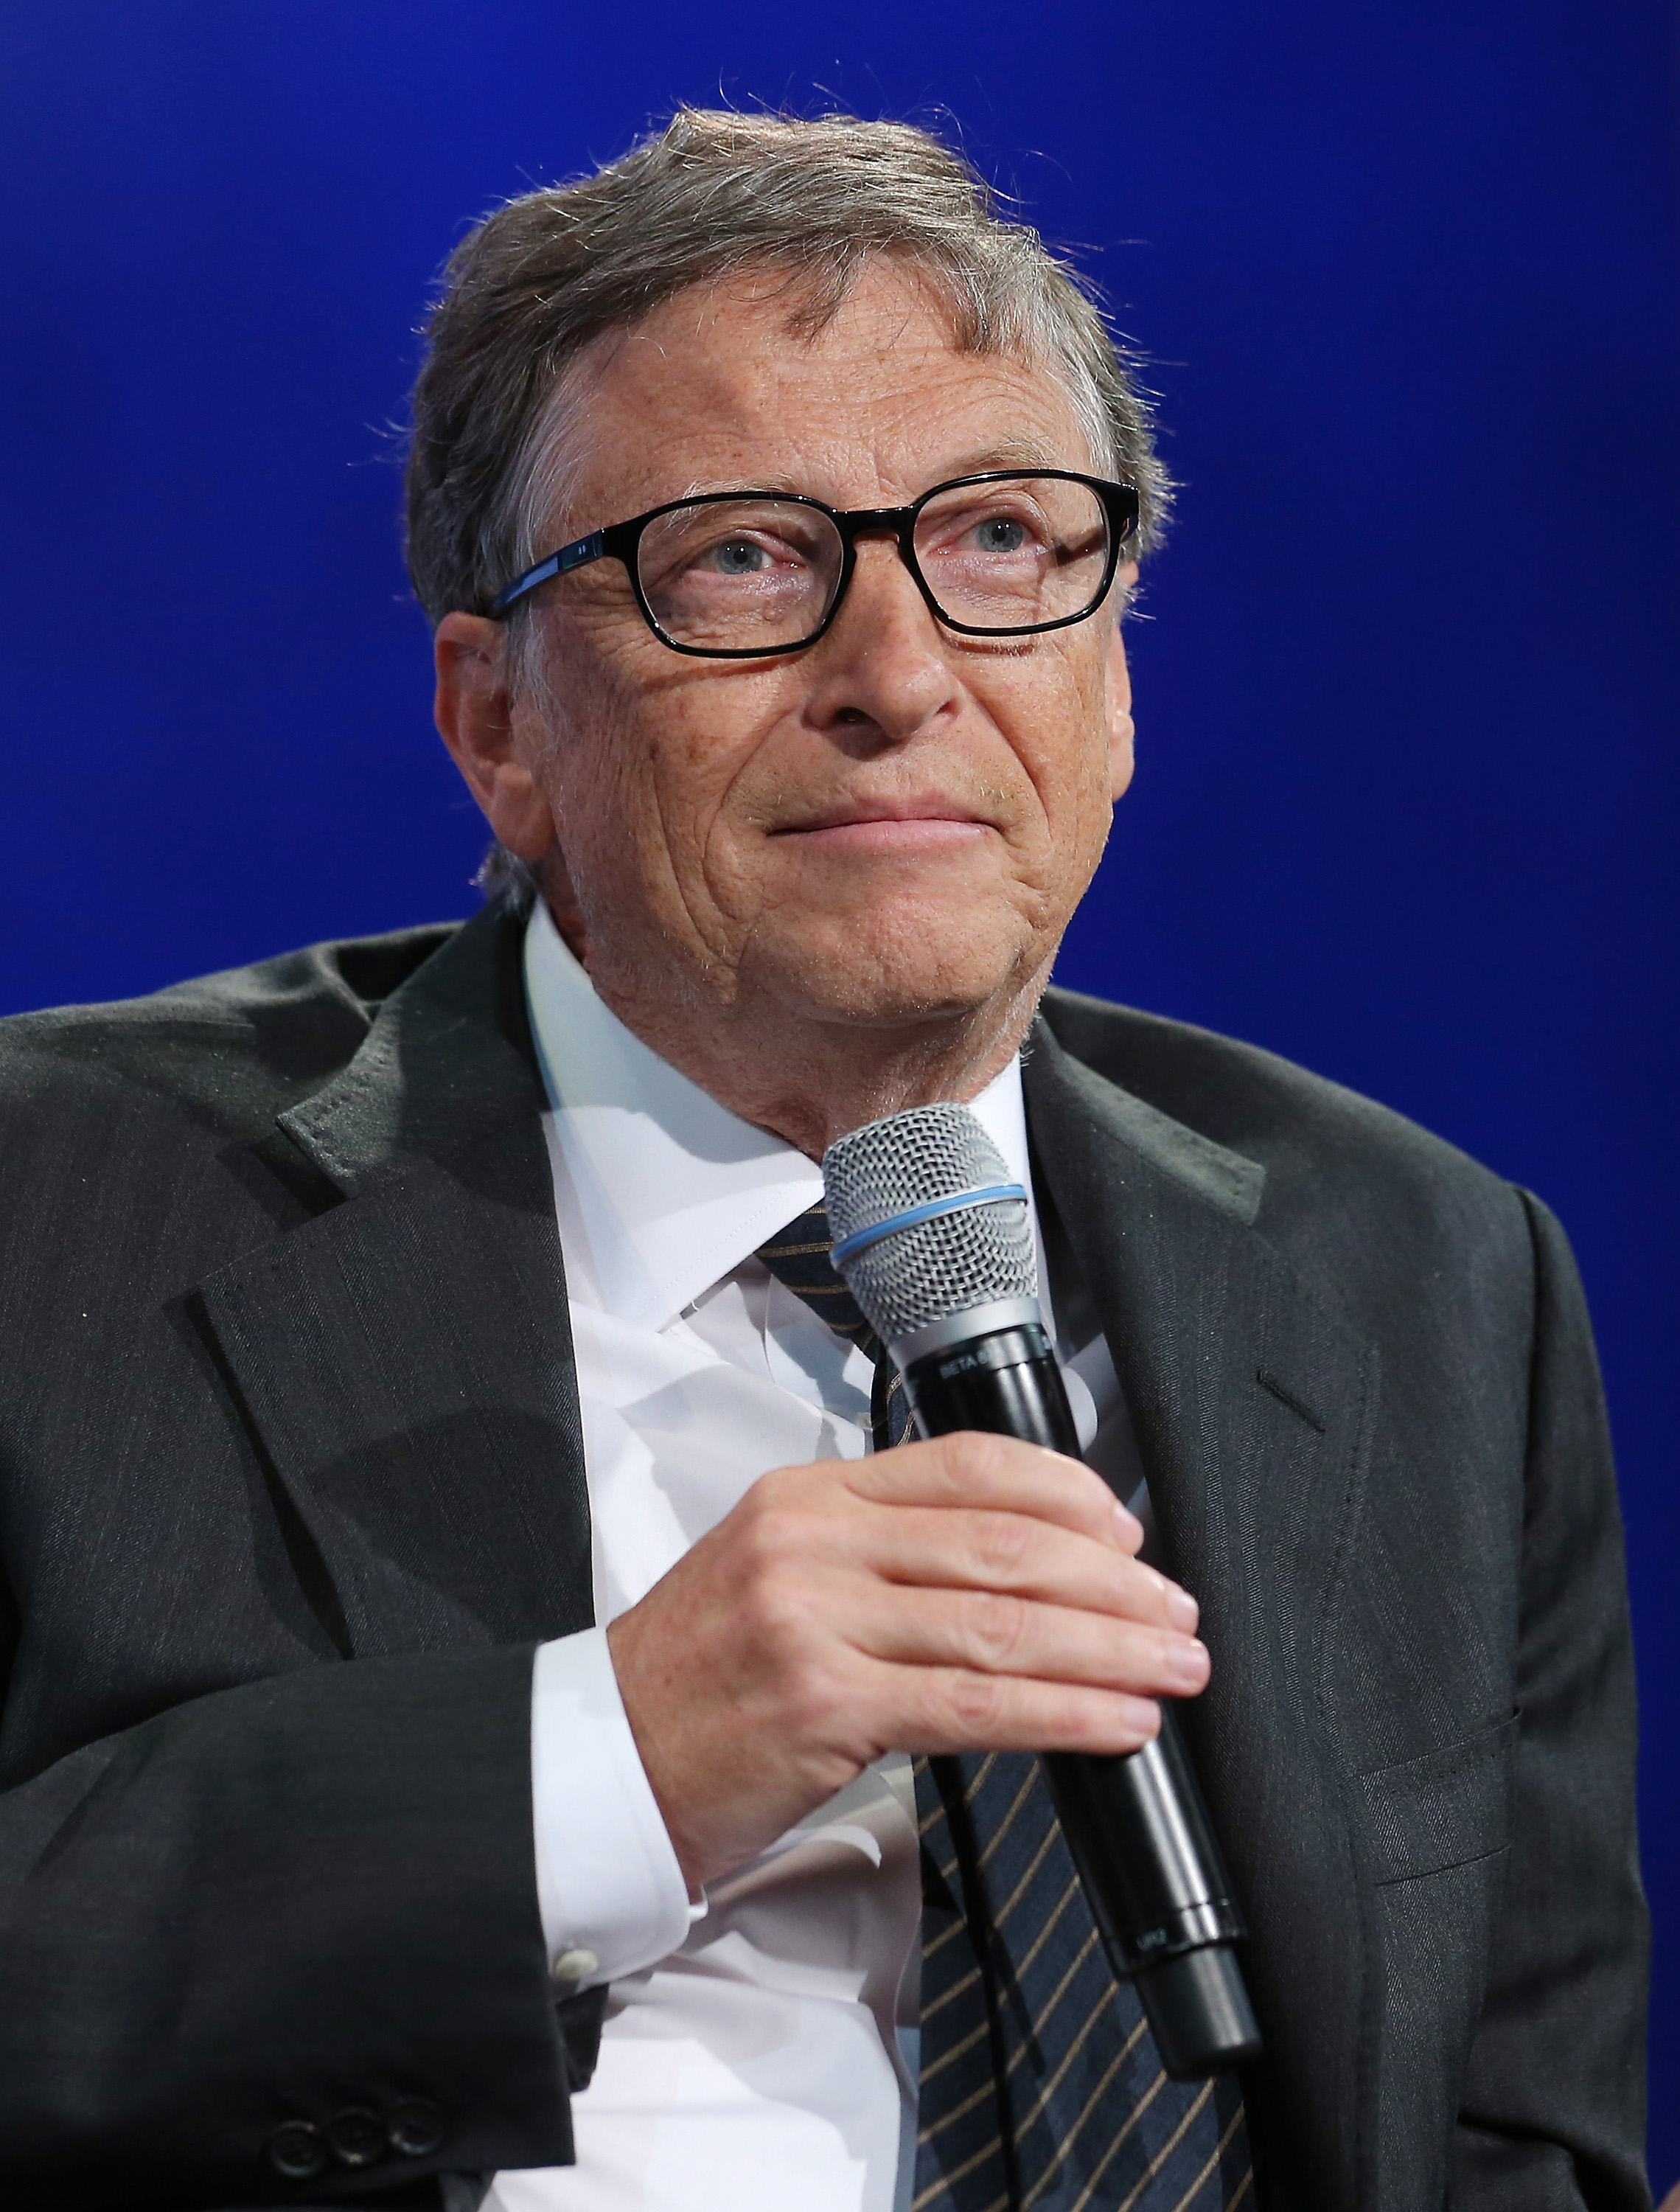 Bill Gates at the Clinton Global Initiative 2015 Annual Meeting in New York City on Sept. 27, 2015.